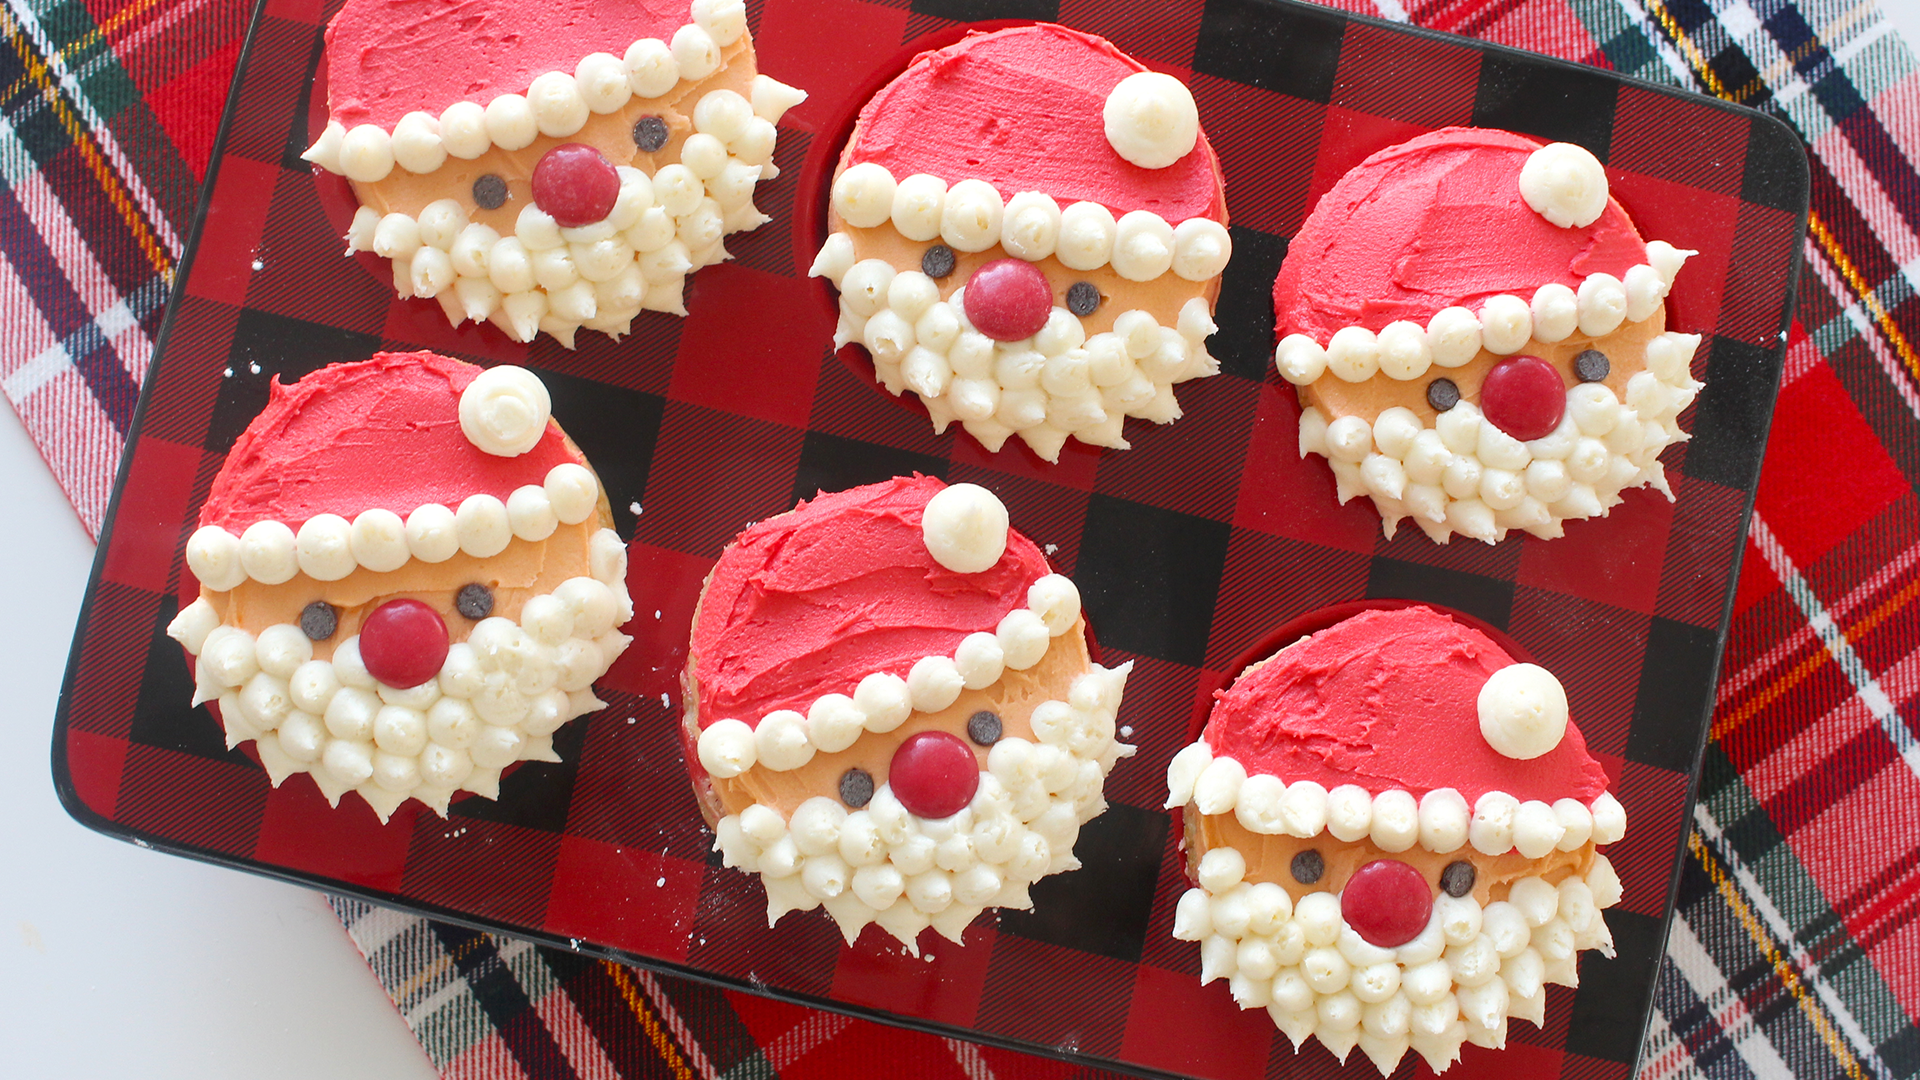 six cupcakes on red and black checkered muffin mould, decorated with red white and orange frosting, made to look like santa, red candies for noses